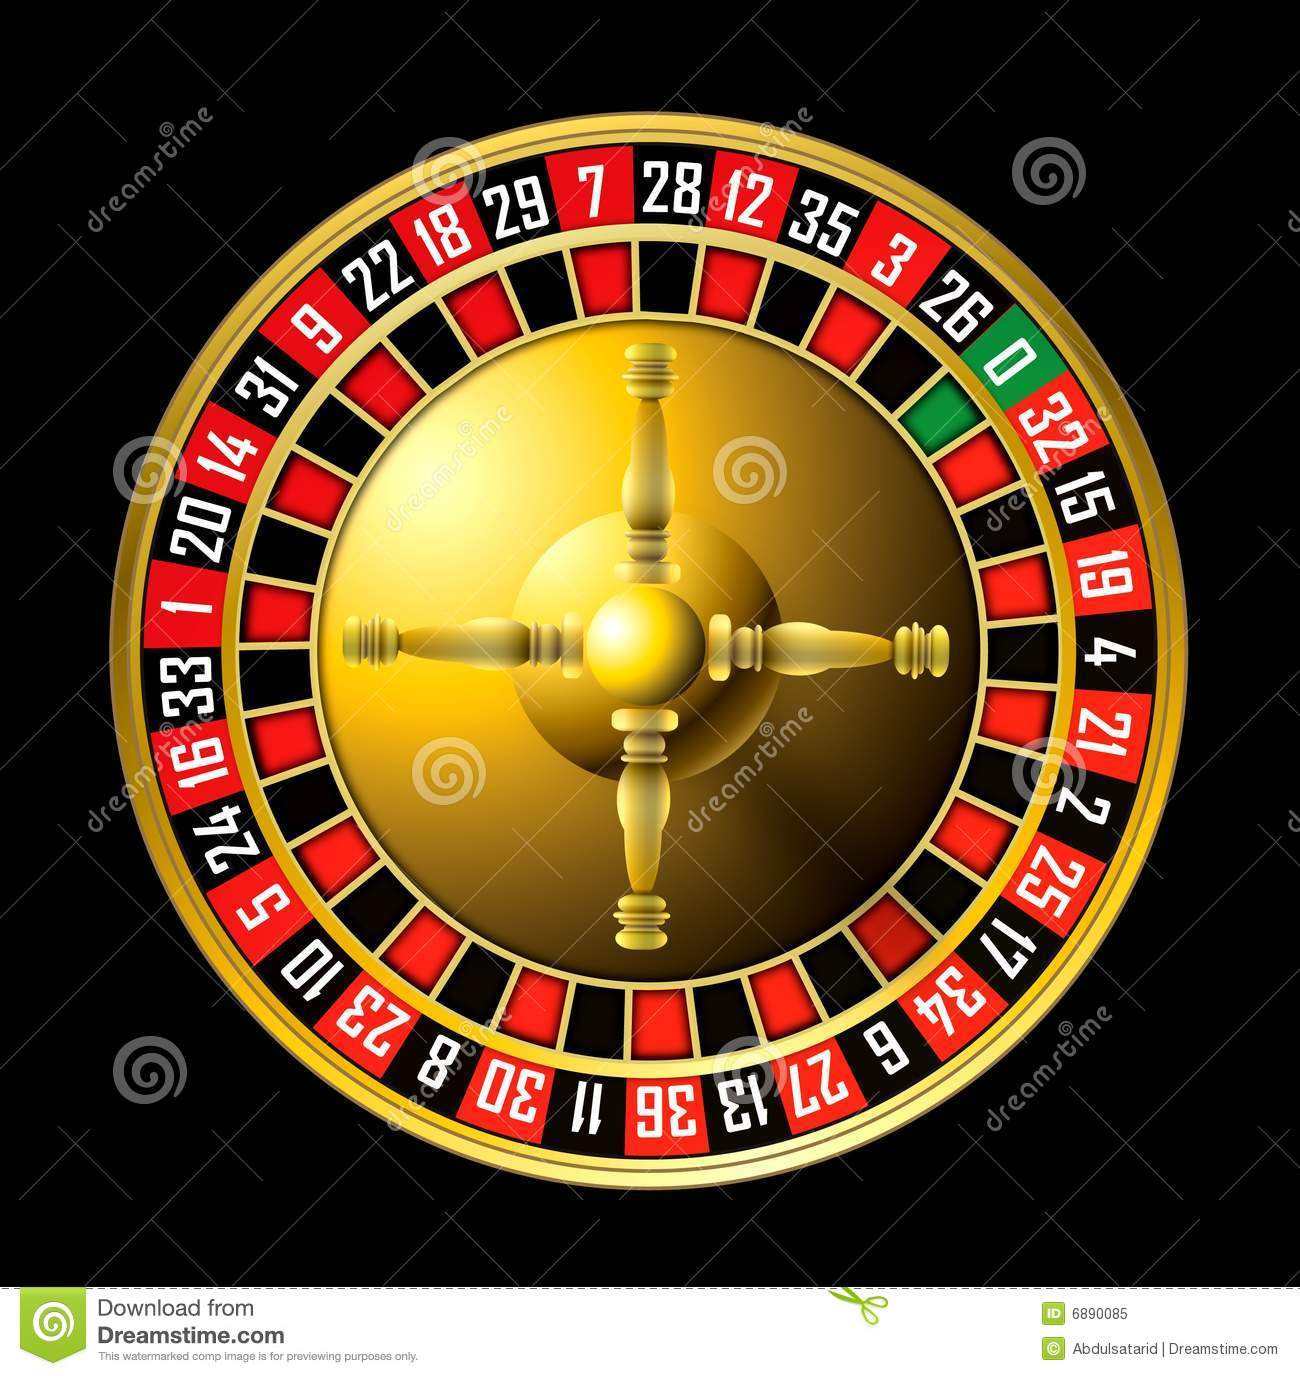 Free roulette wheel app poker tournaments in albuquerque